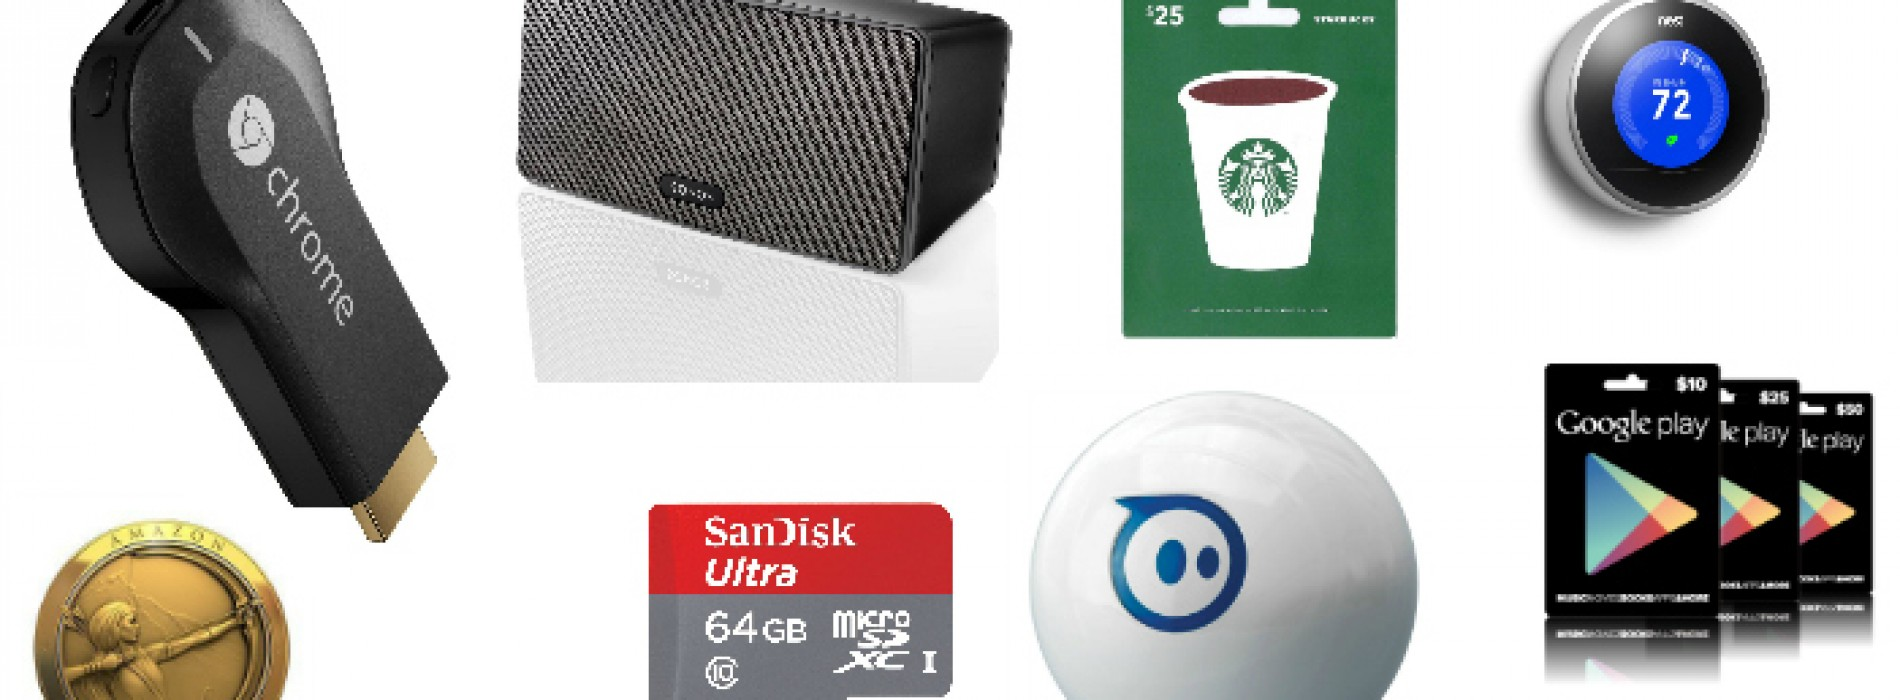 Last minute gift ideas for dads and grads